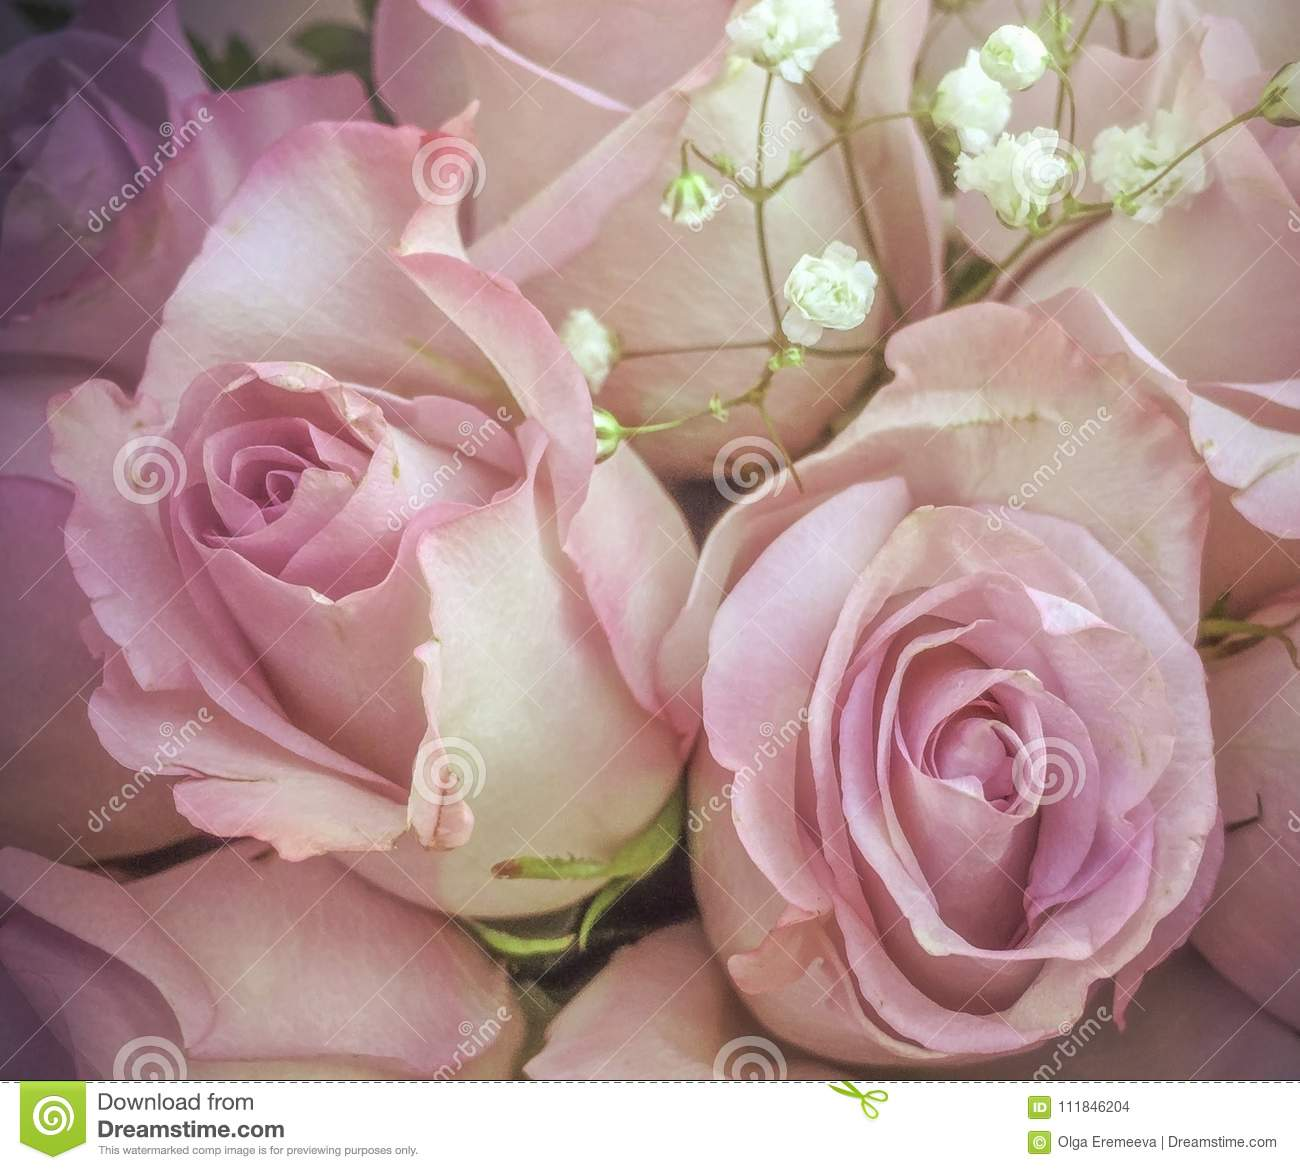 Delicate Pink Roses With Small White Flowers In Bouquet Stock Photo